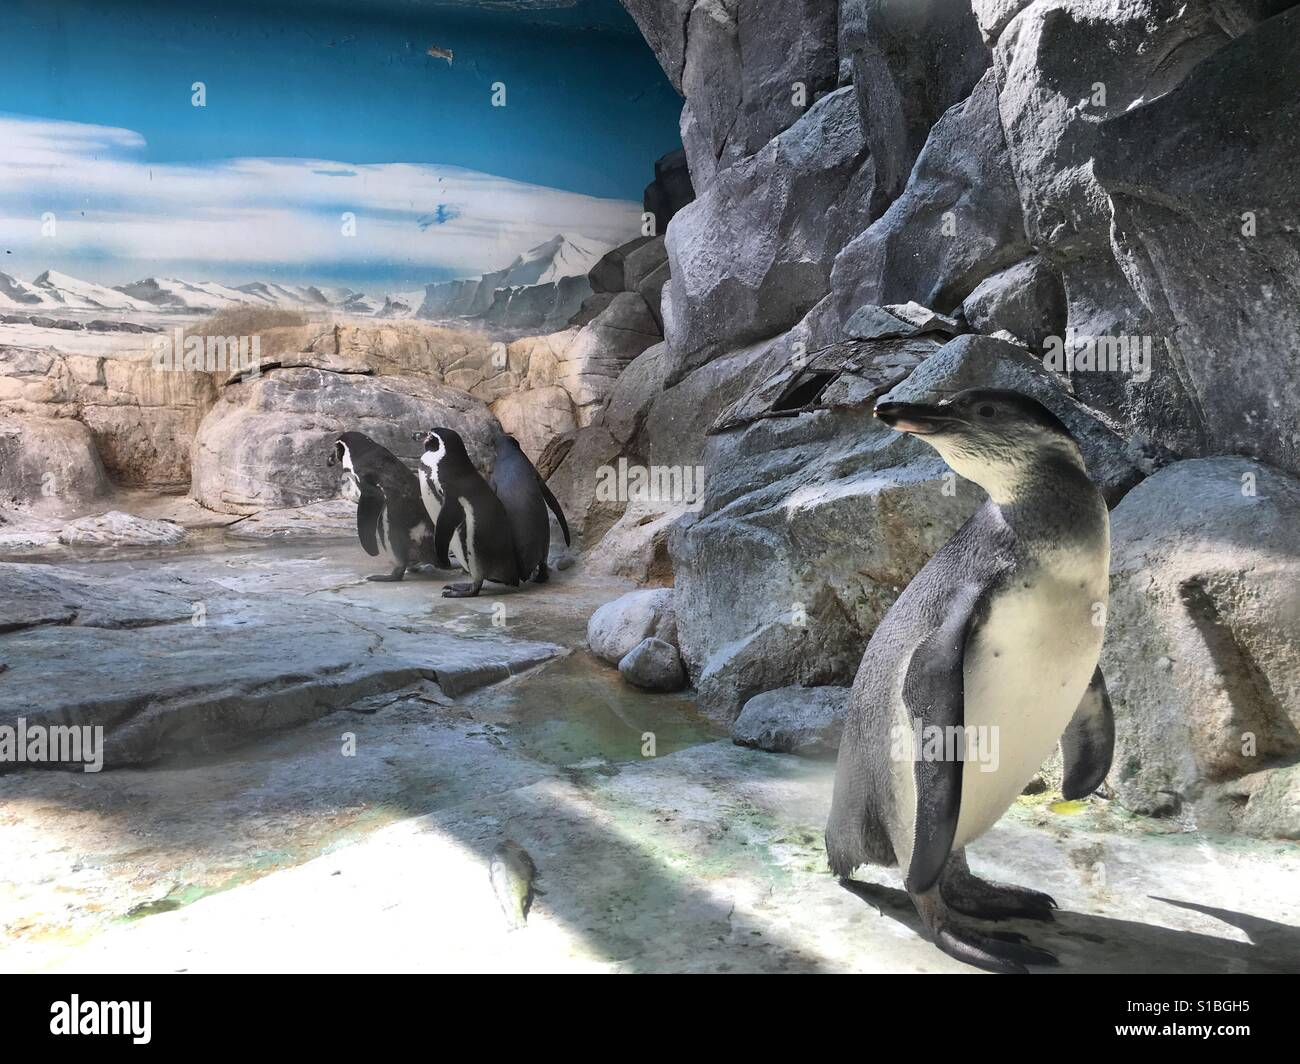 Pinguine Stockbild